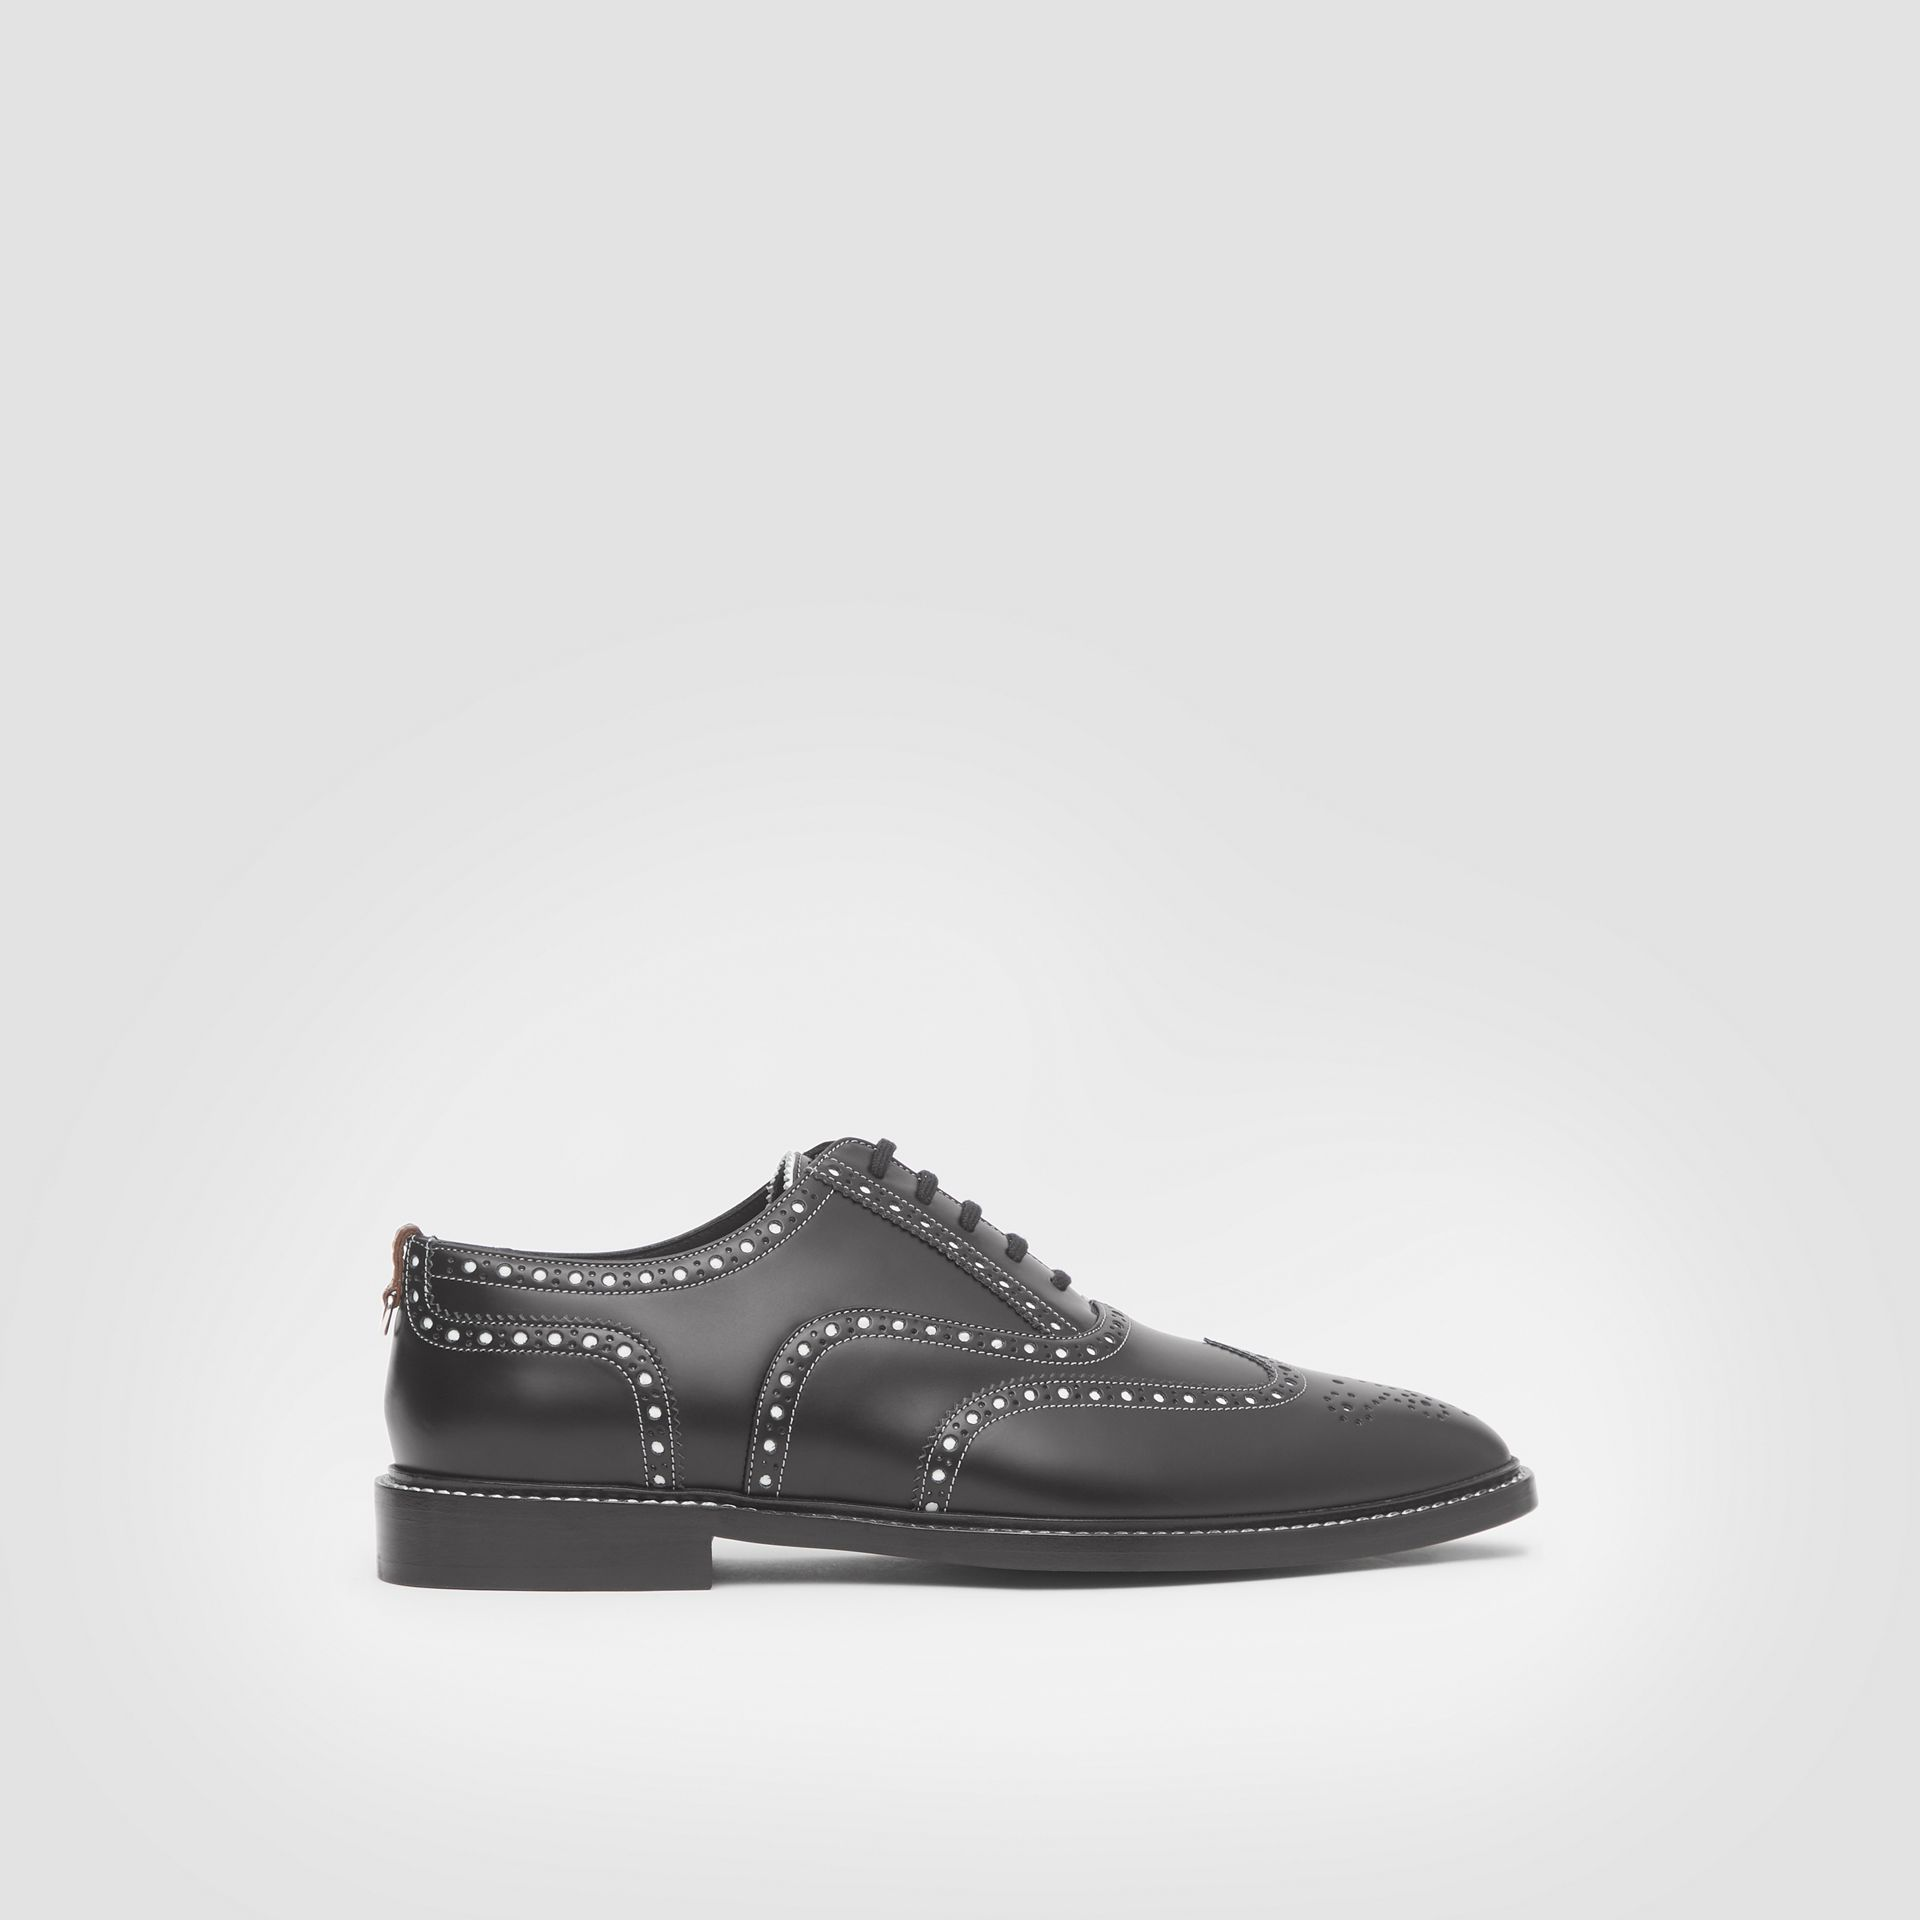 D-ring Detail Two-tone Leather Oxford Brogues in Black/white - Men | Burberry United Kingdom - gallery image 4